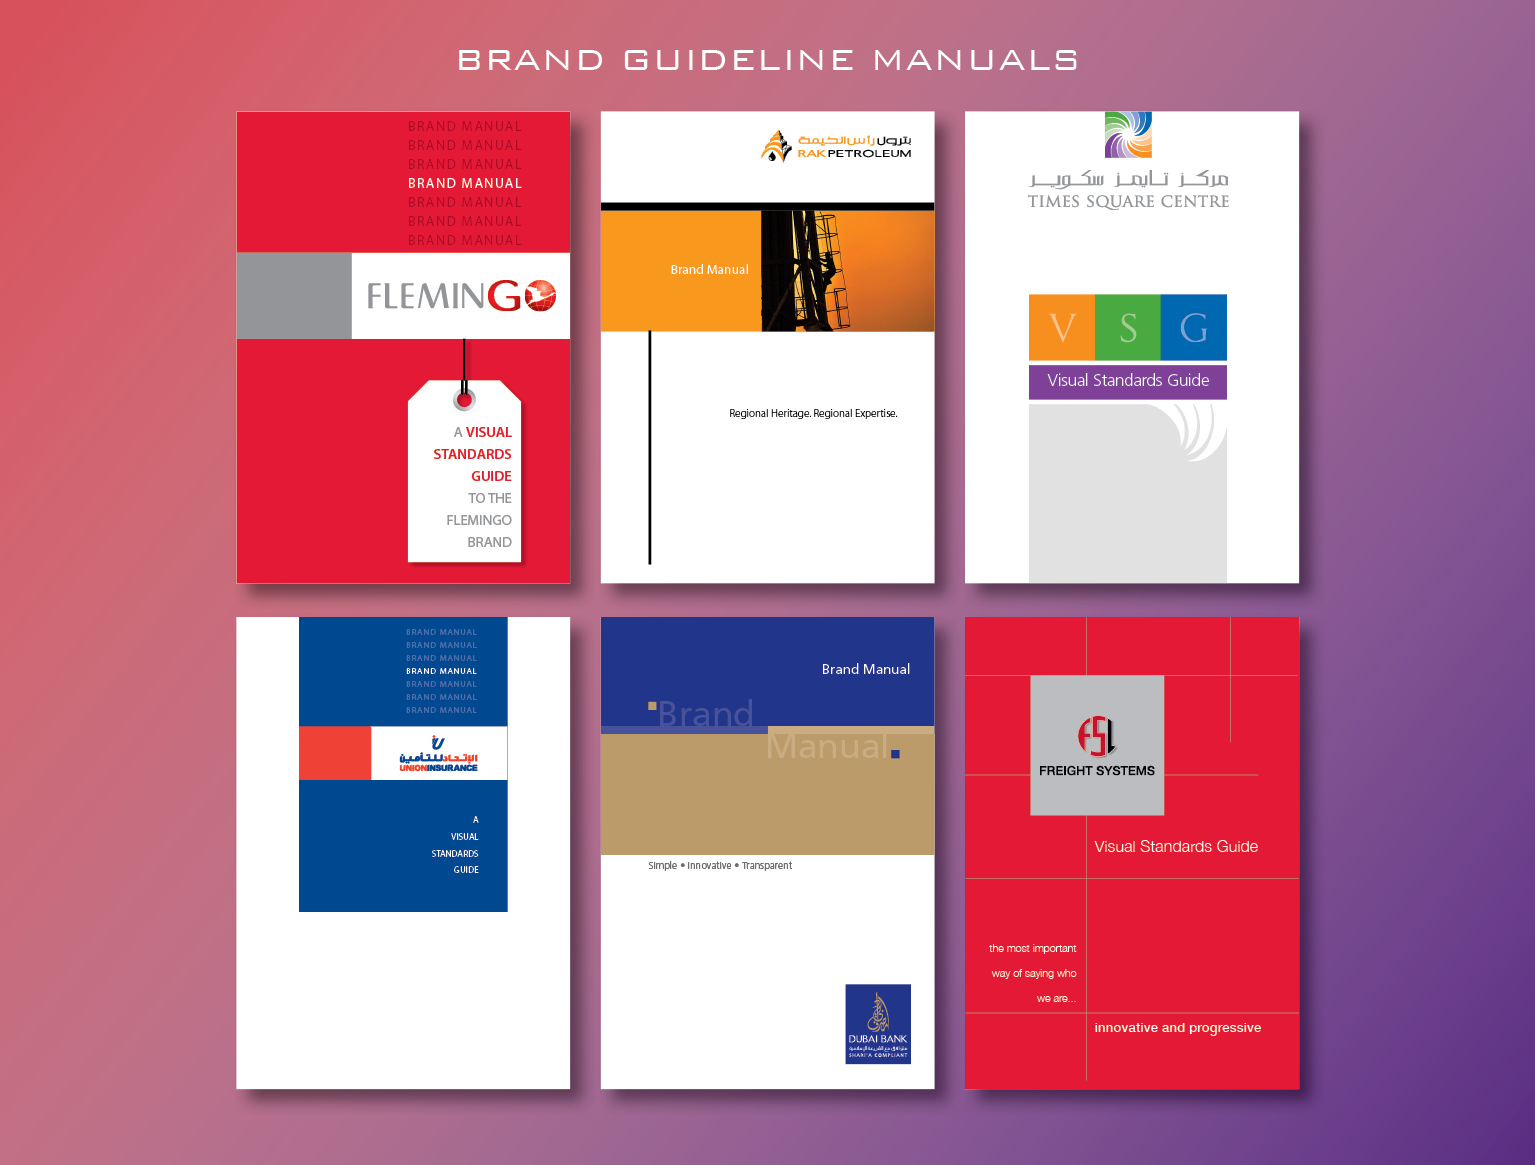 Brand Manuals